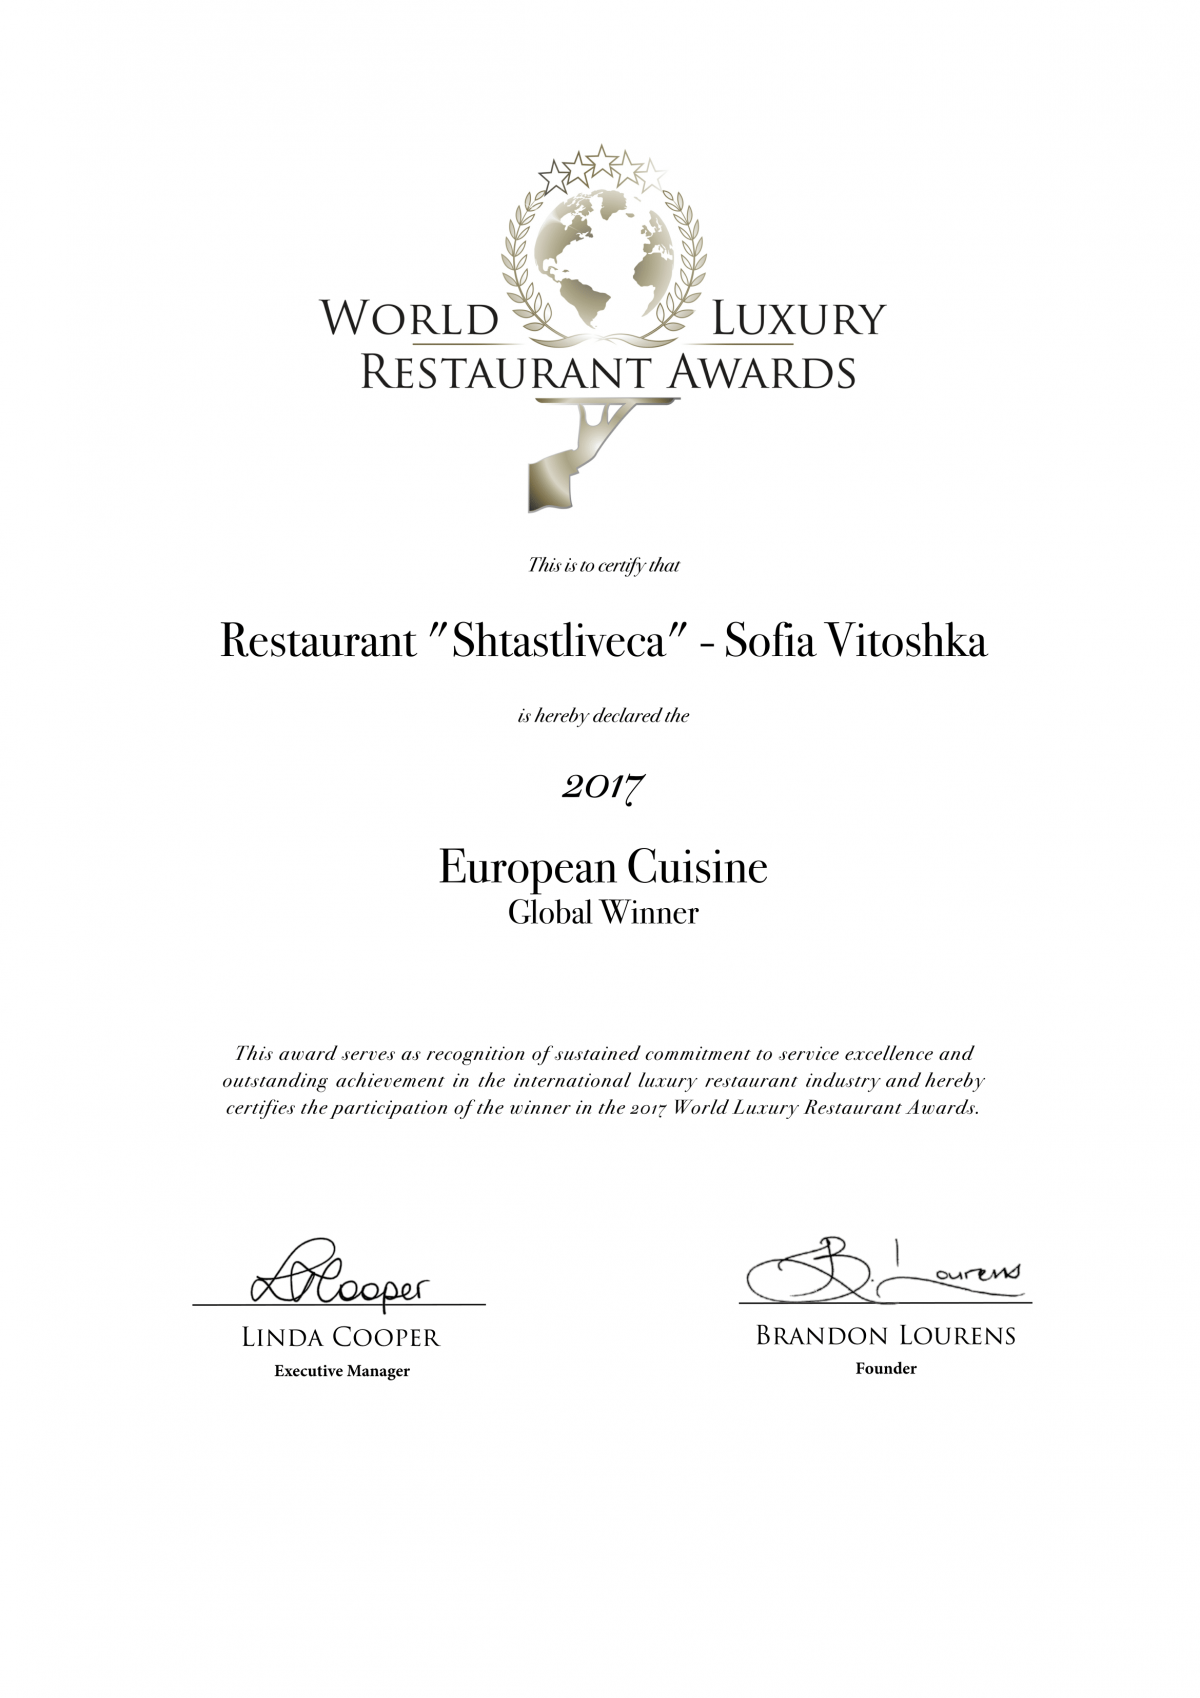 World Luxury Restaurants Awards - European Cuisine Global Winner 2017